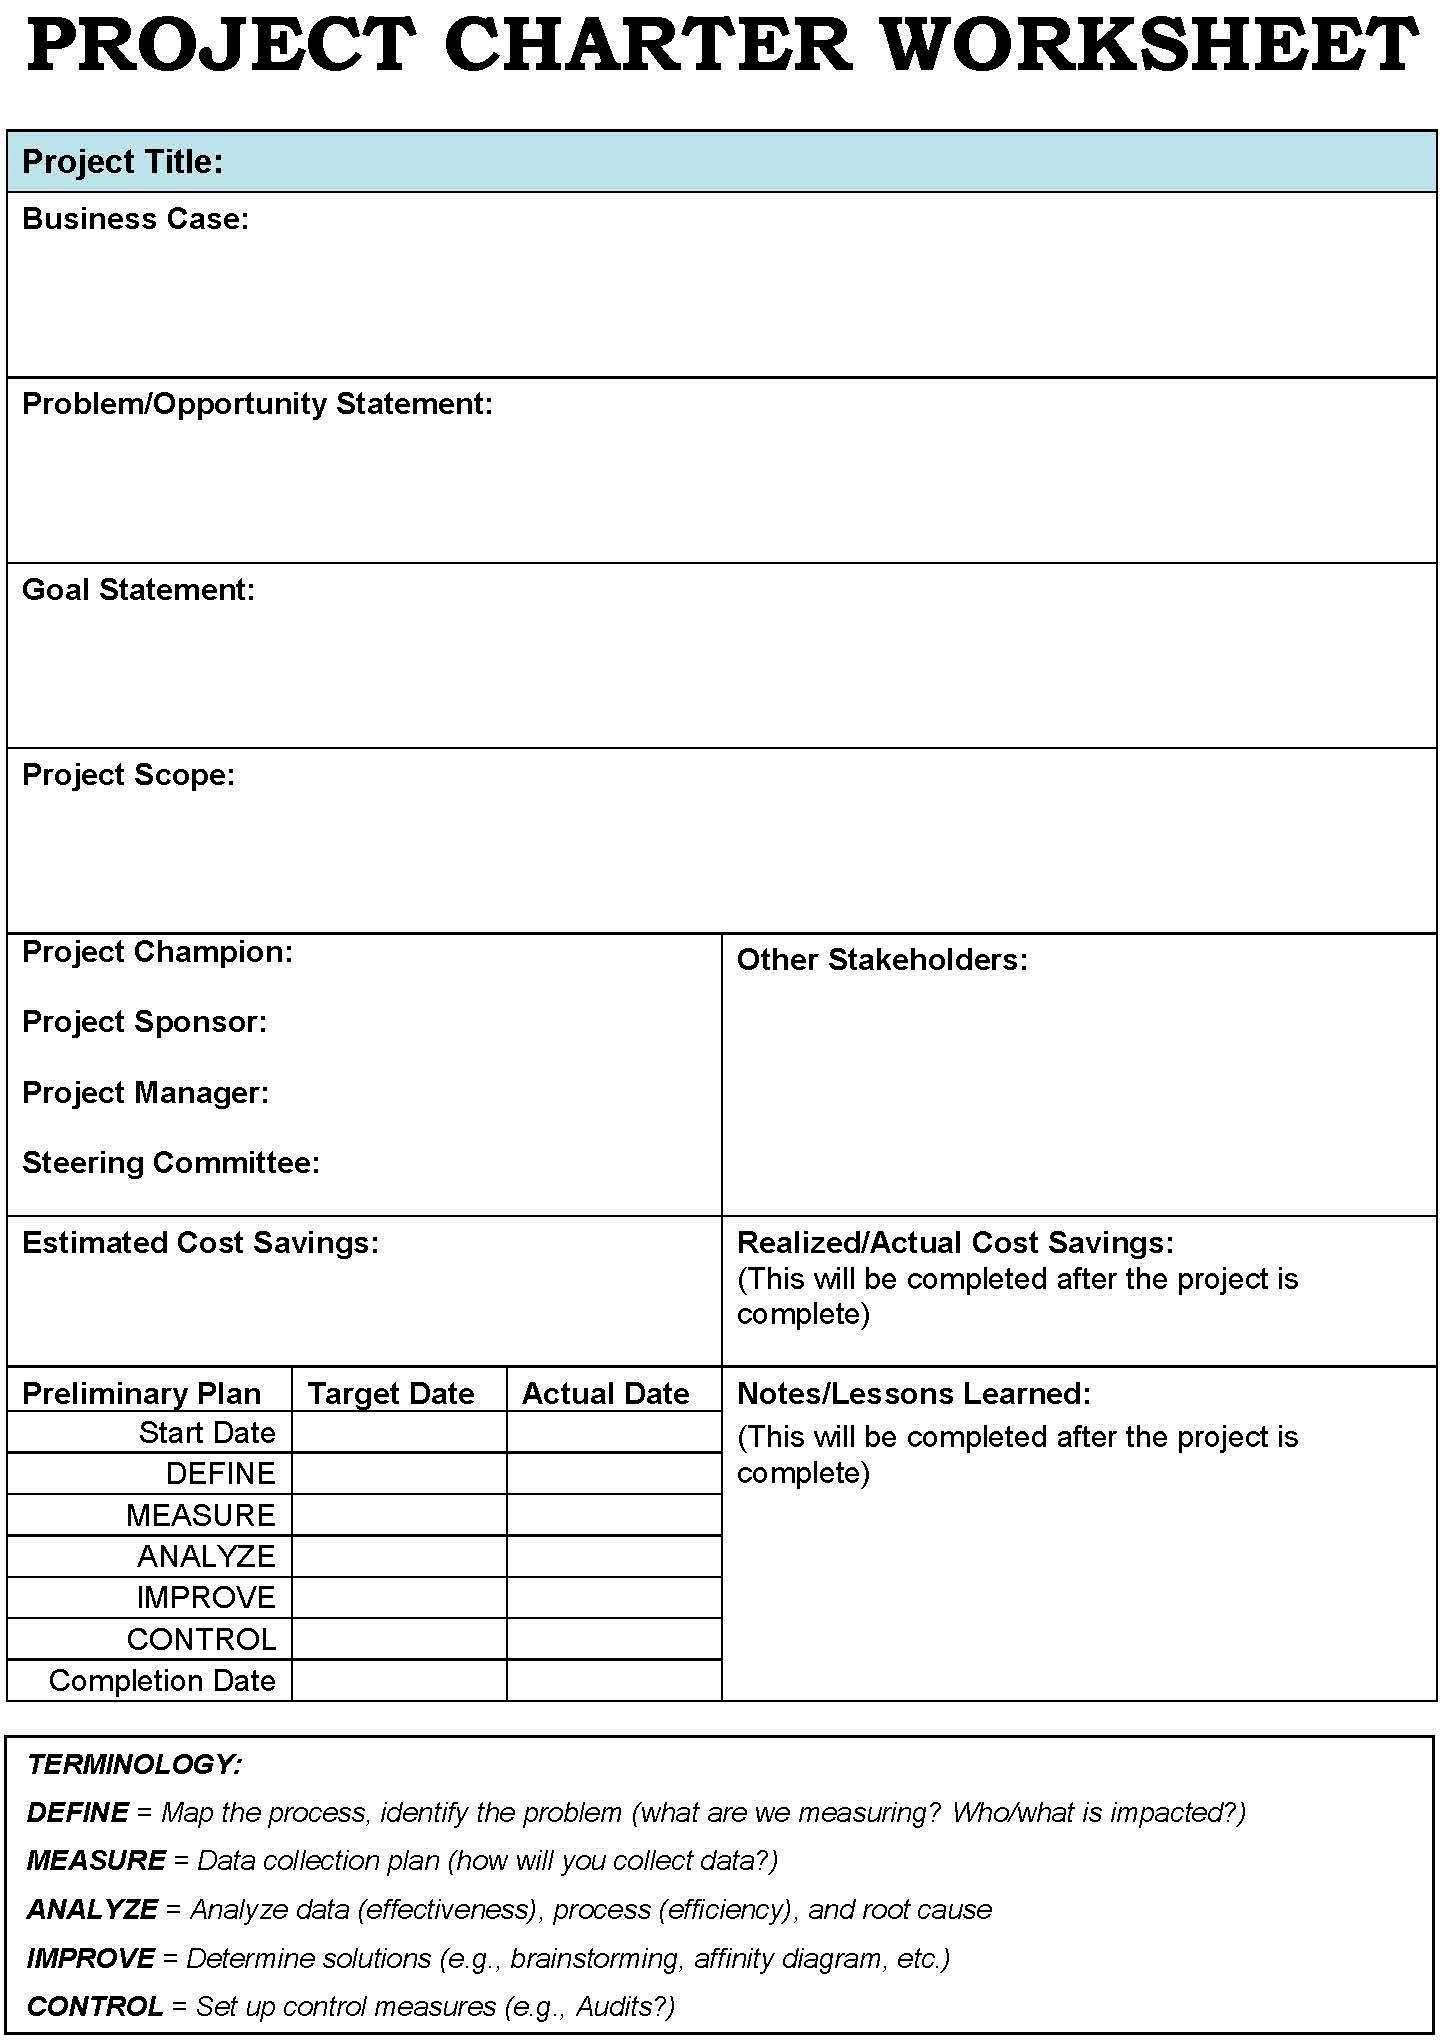 001 Unusual Project Charter Template Excel Inspiration  Lean Pmbok NederlandFull